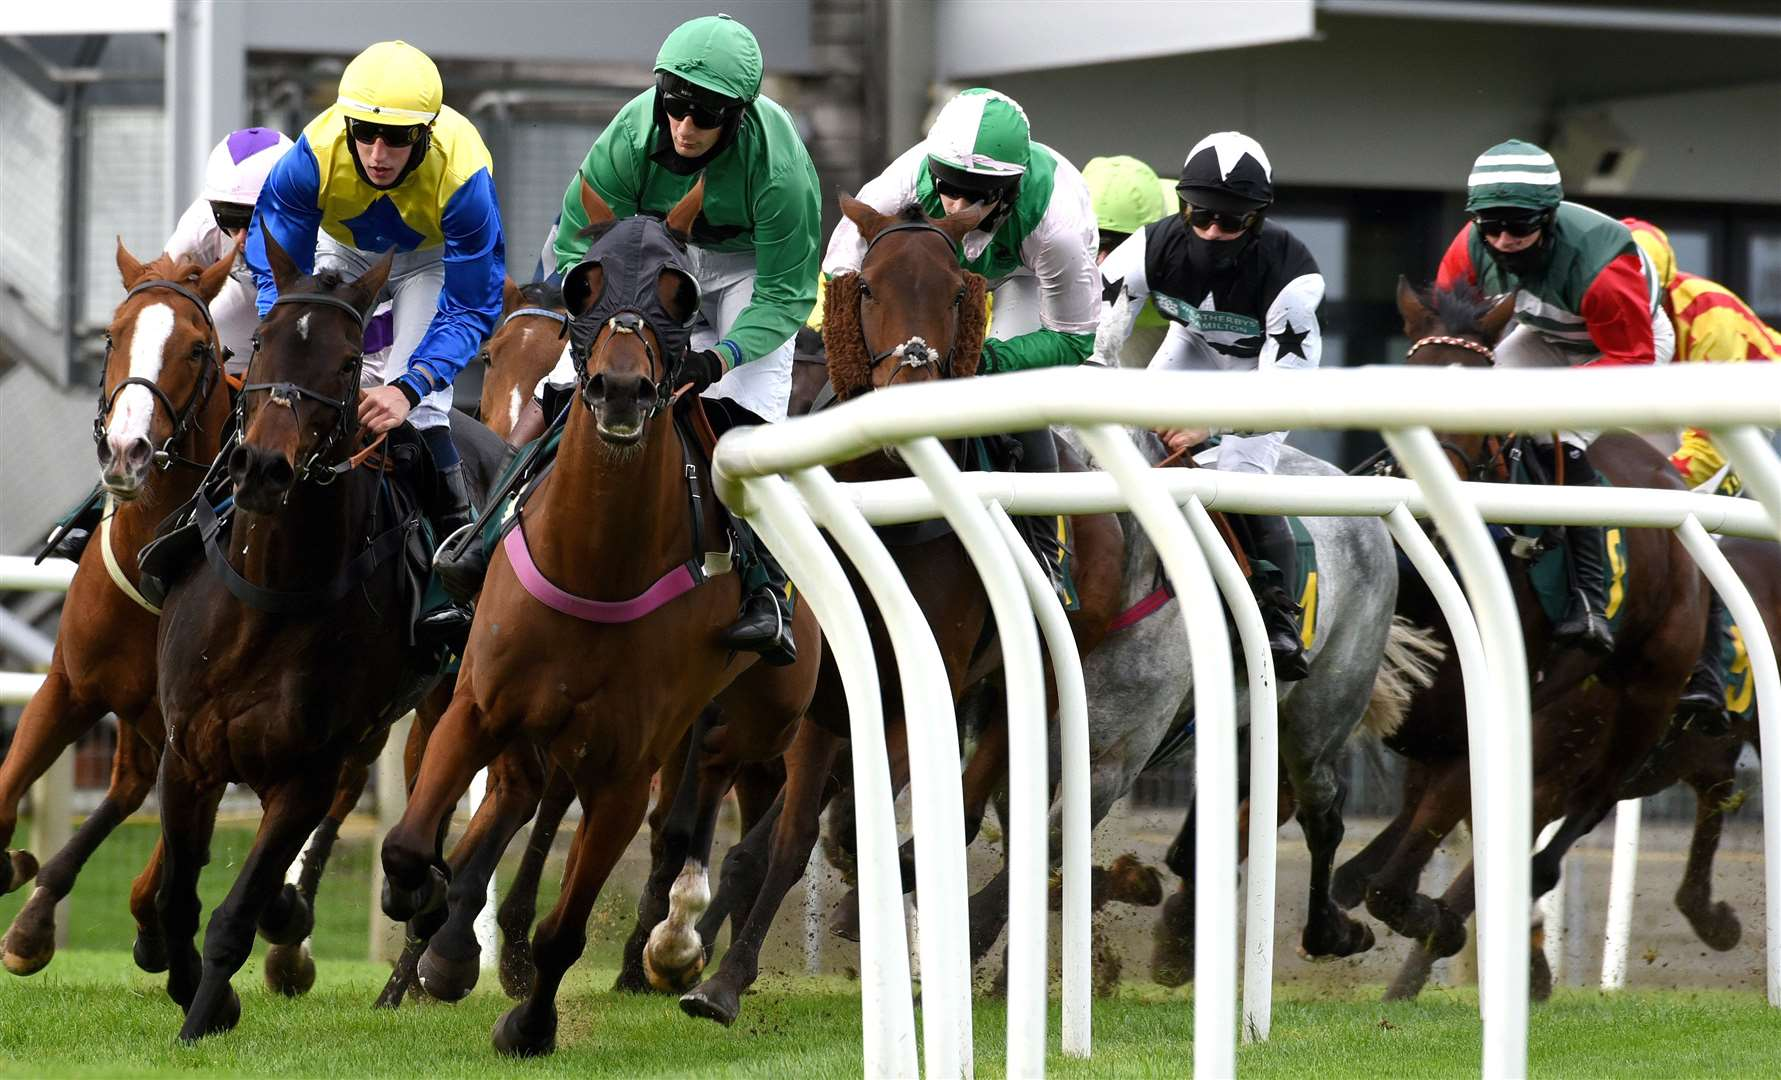 Fakenham Racecourse opens its 2020/21 National Hunt season on Friday 16th October, backed by Sky Sports Racing, will operate without members of the public present due to the Covid 19 restrictions...Race No 5. (42743034)